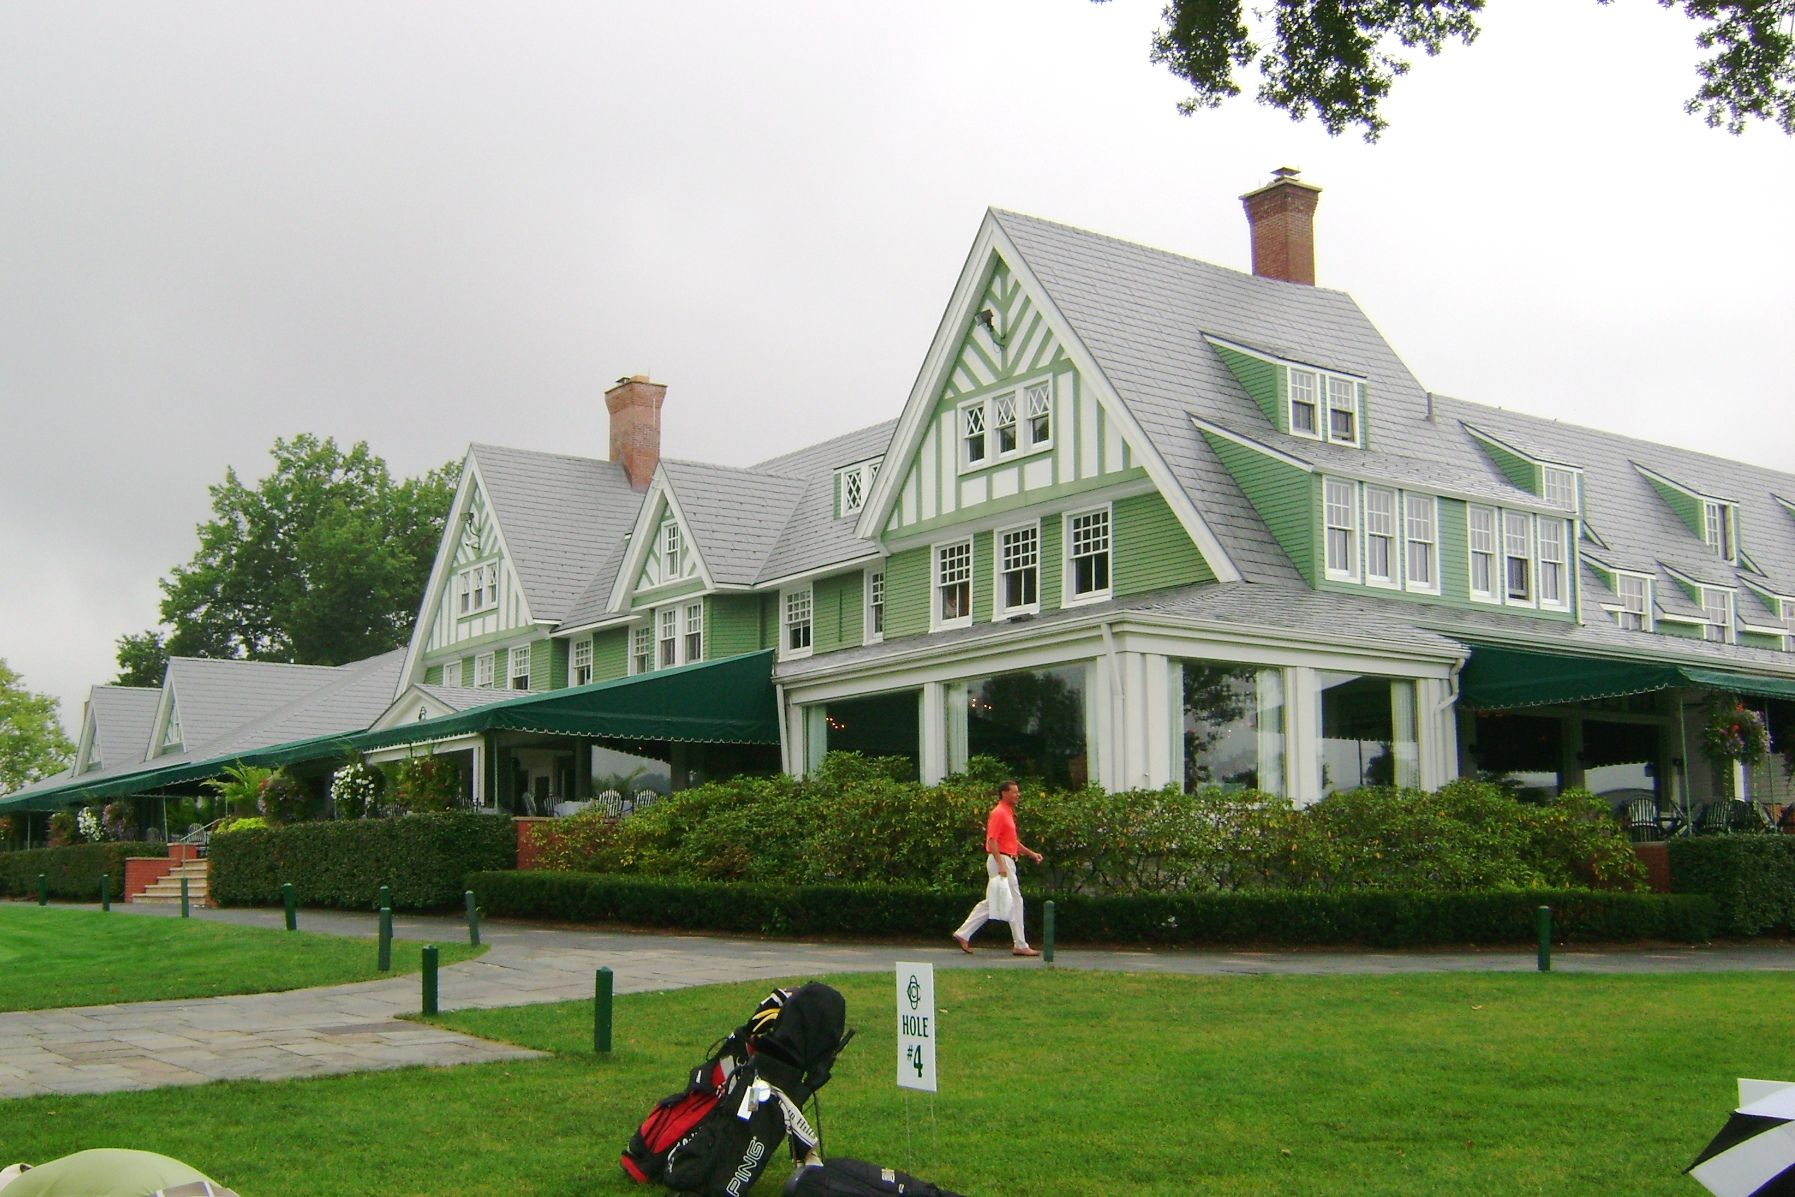 oakmont country club oakmont pa posted by kenneth hart